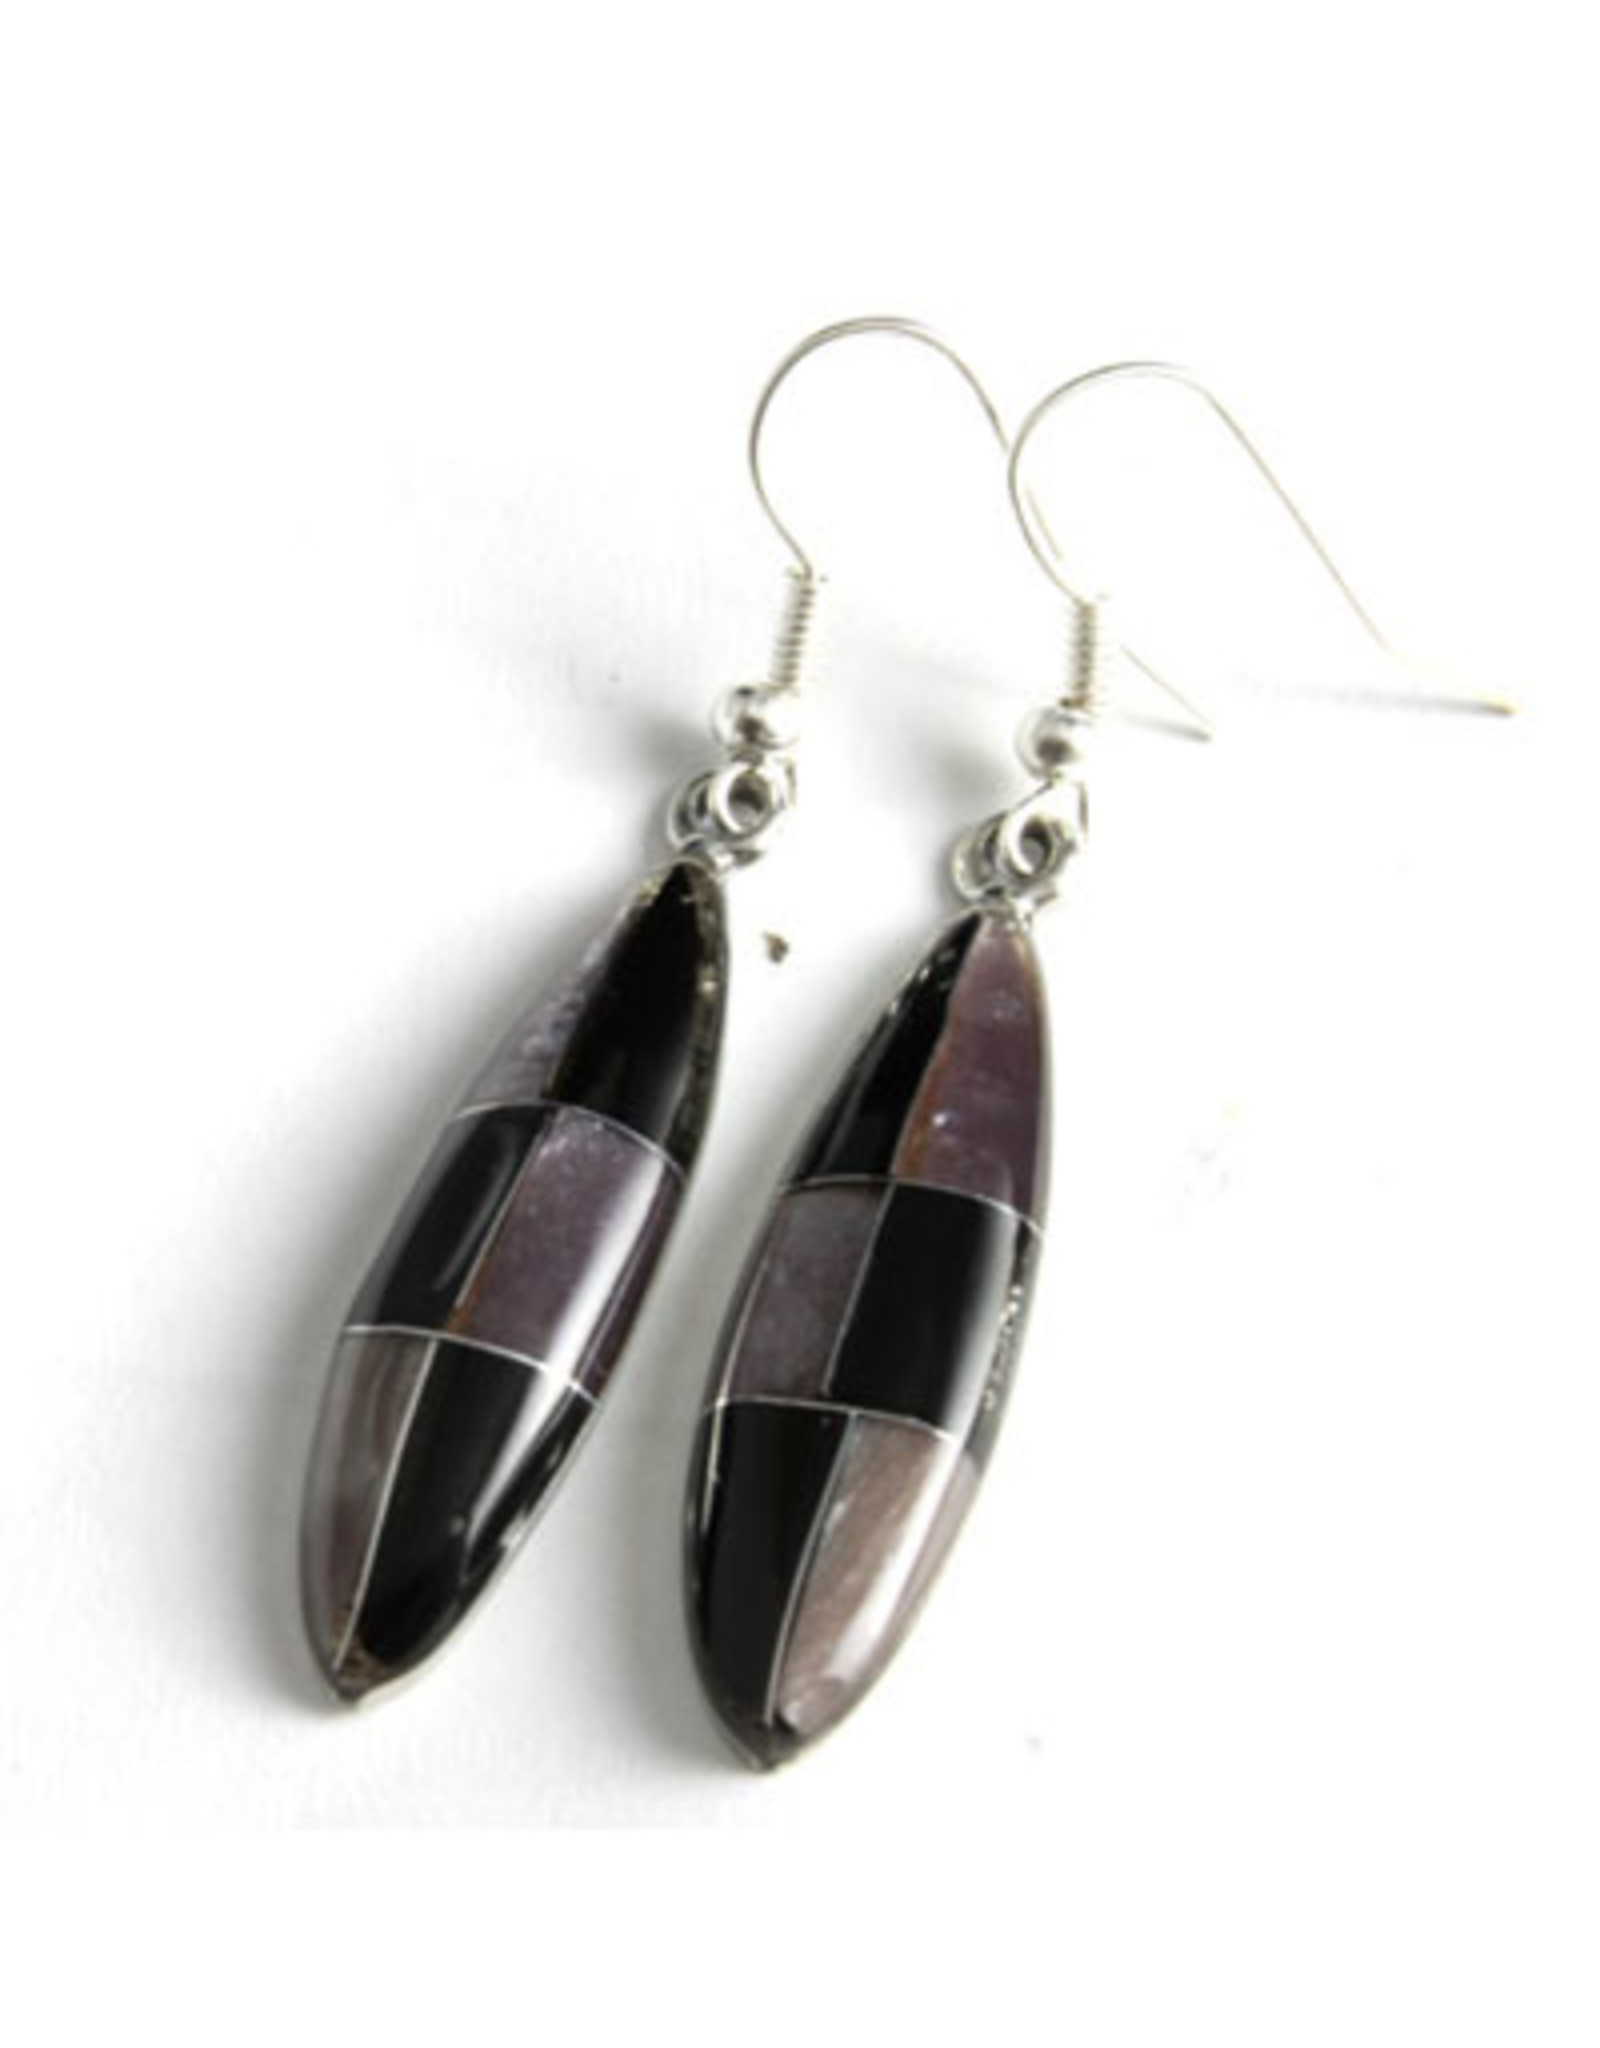 Obsidian Theme Stone Inlay Earrings, Mexico